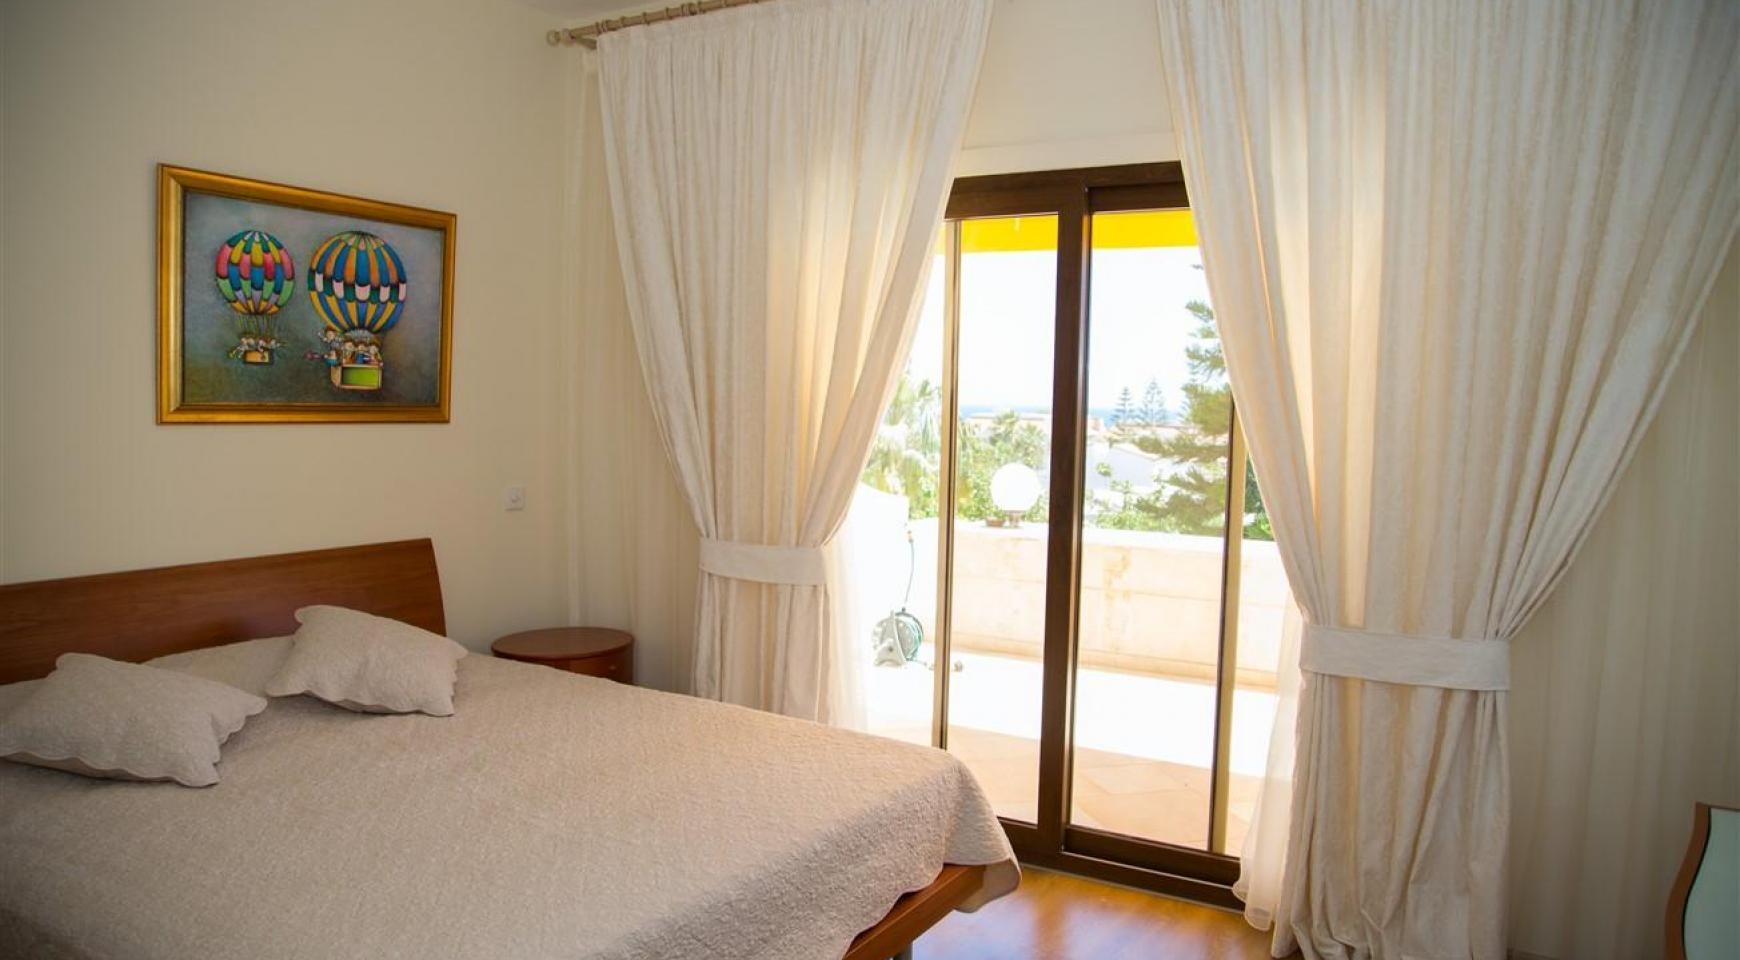 3 Bedroom Apartment in Thera Complex by the Sea - 12